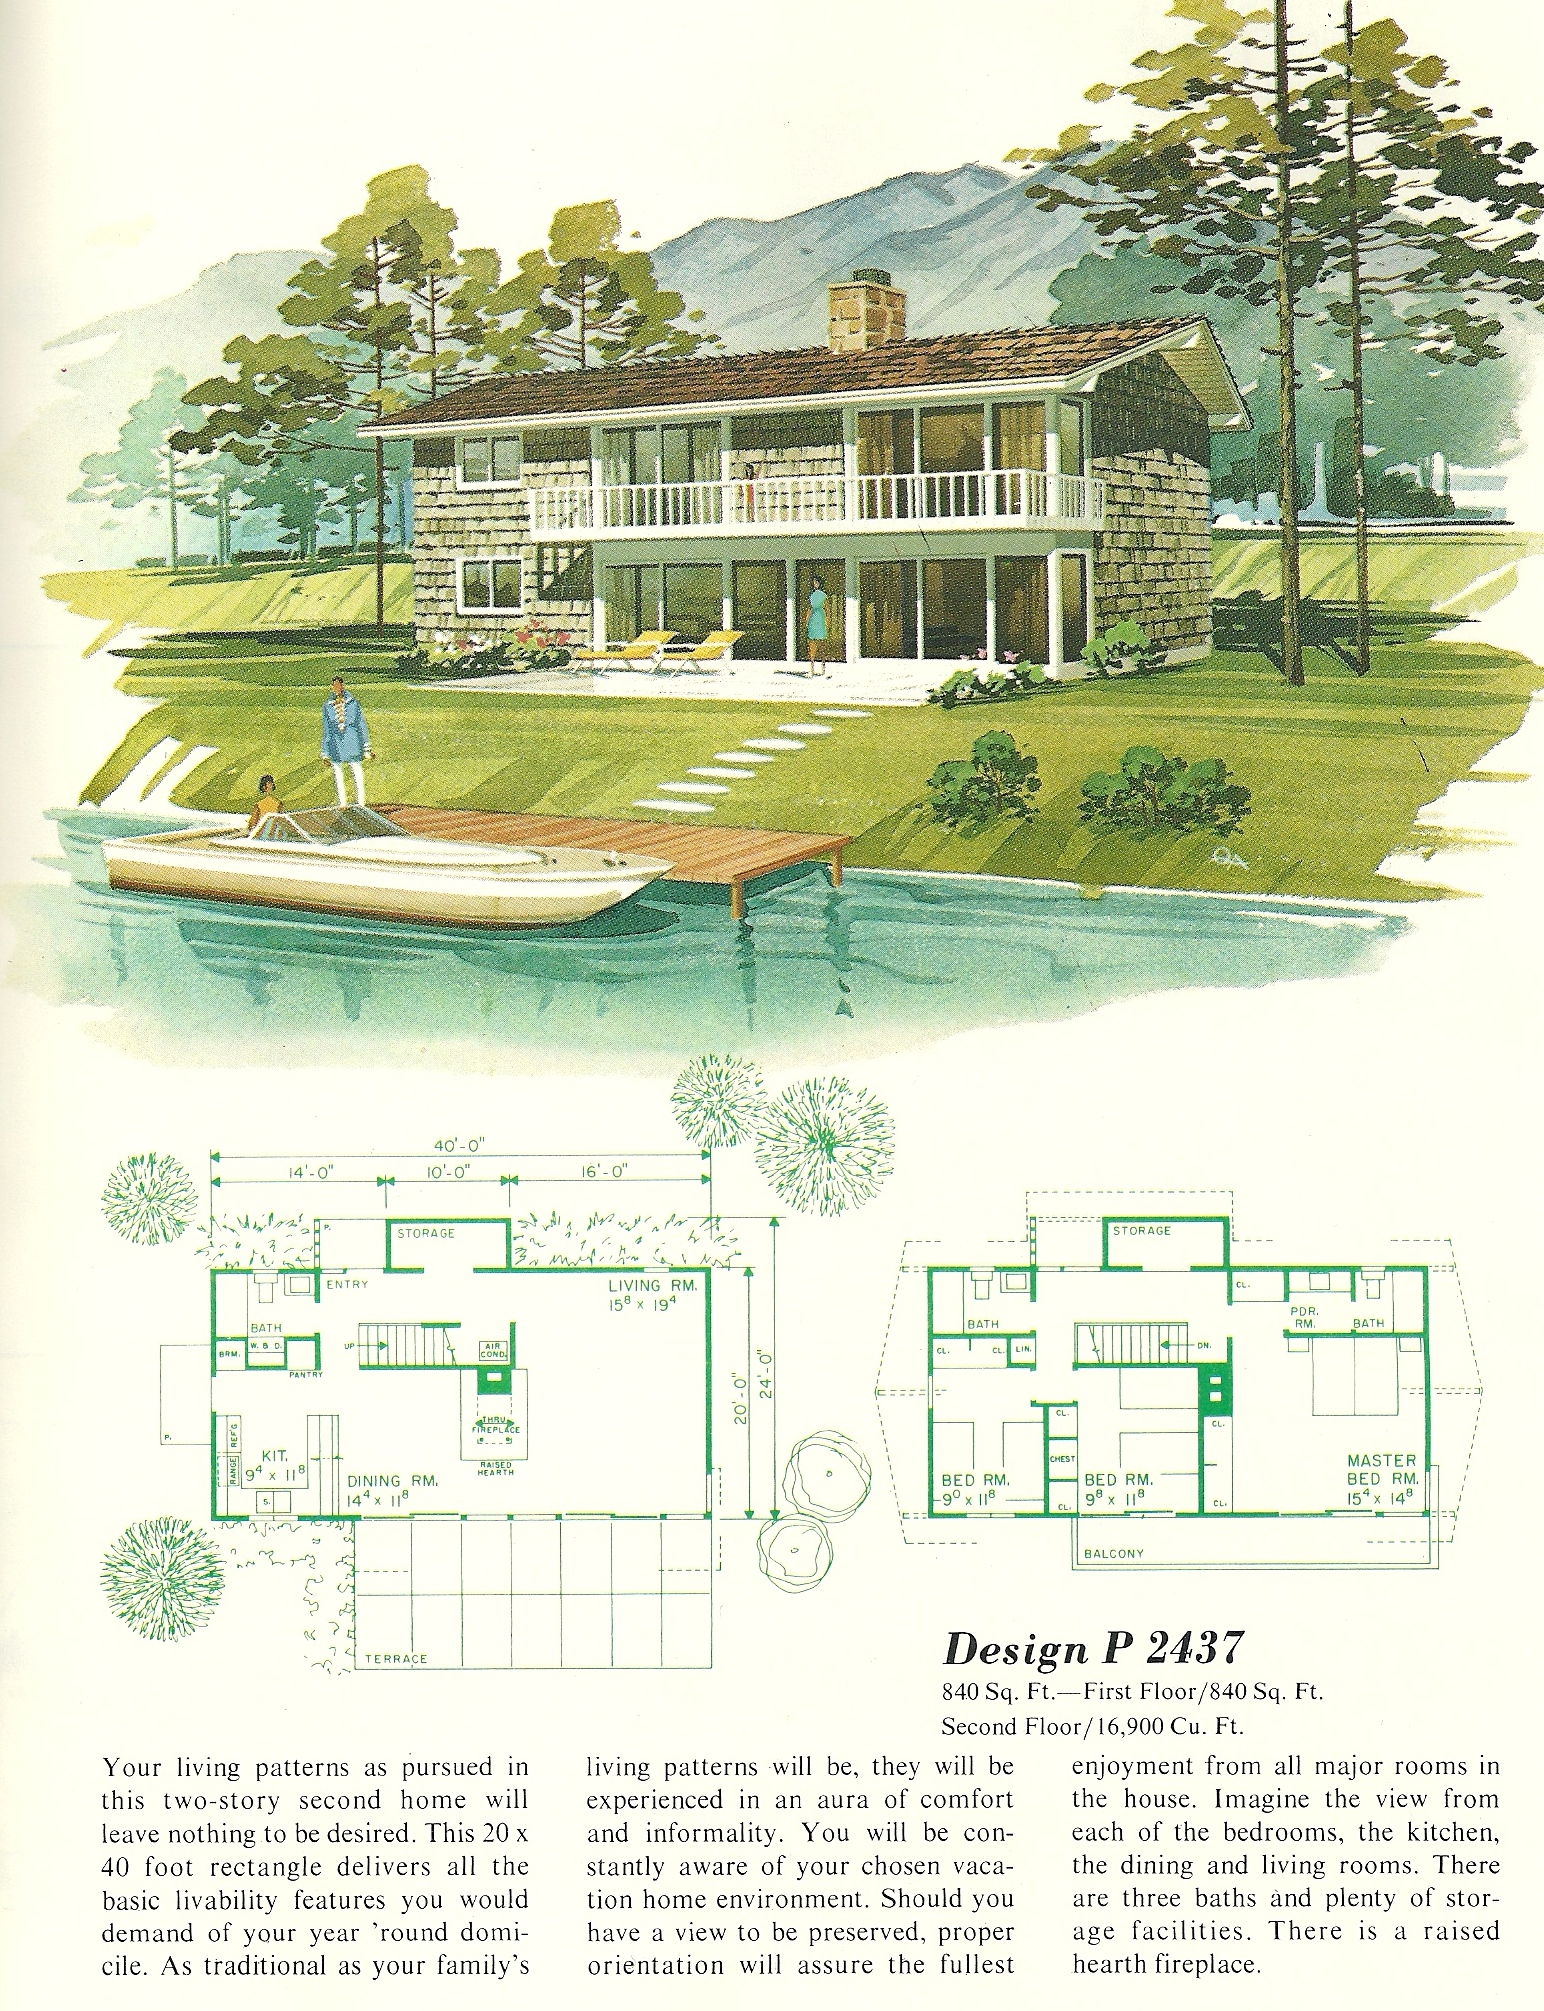 Vintage house plans vacation homes 2437 antique alter ego for Free vacation home plans